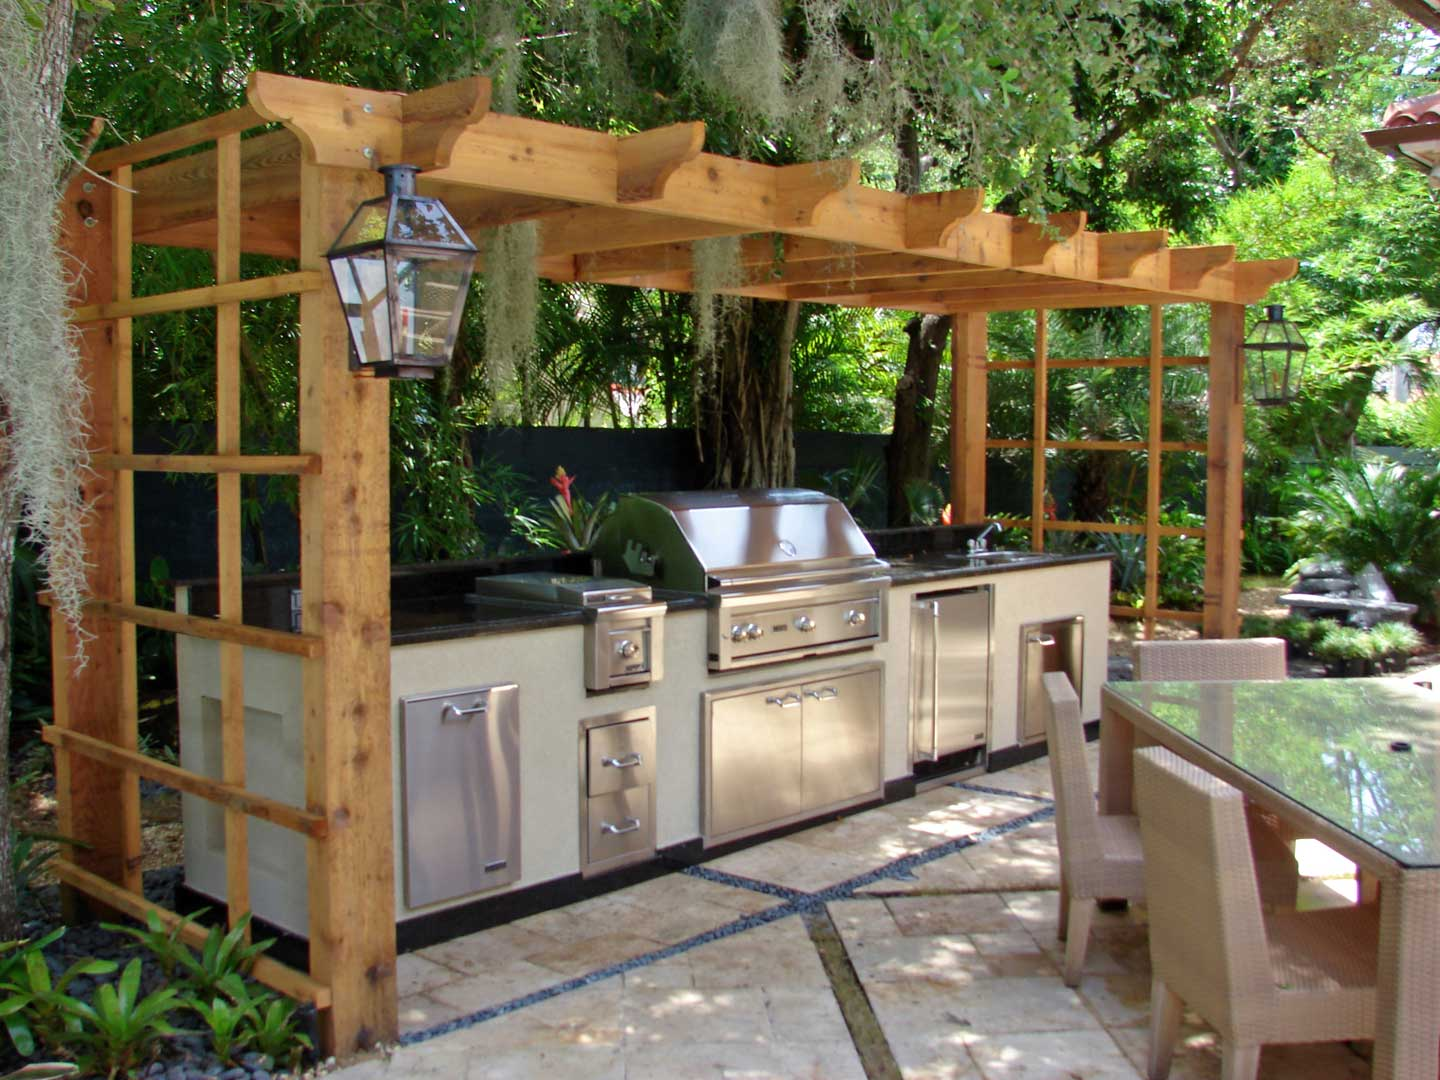 Garden patio designs ideas my decorative for Outdoor kitchen pictures design ideas